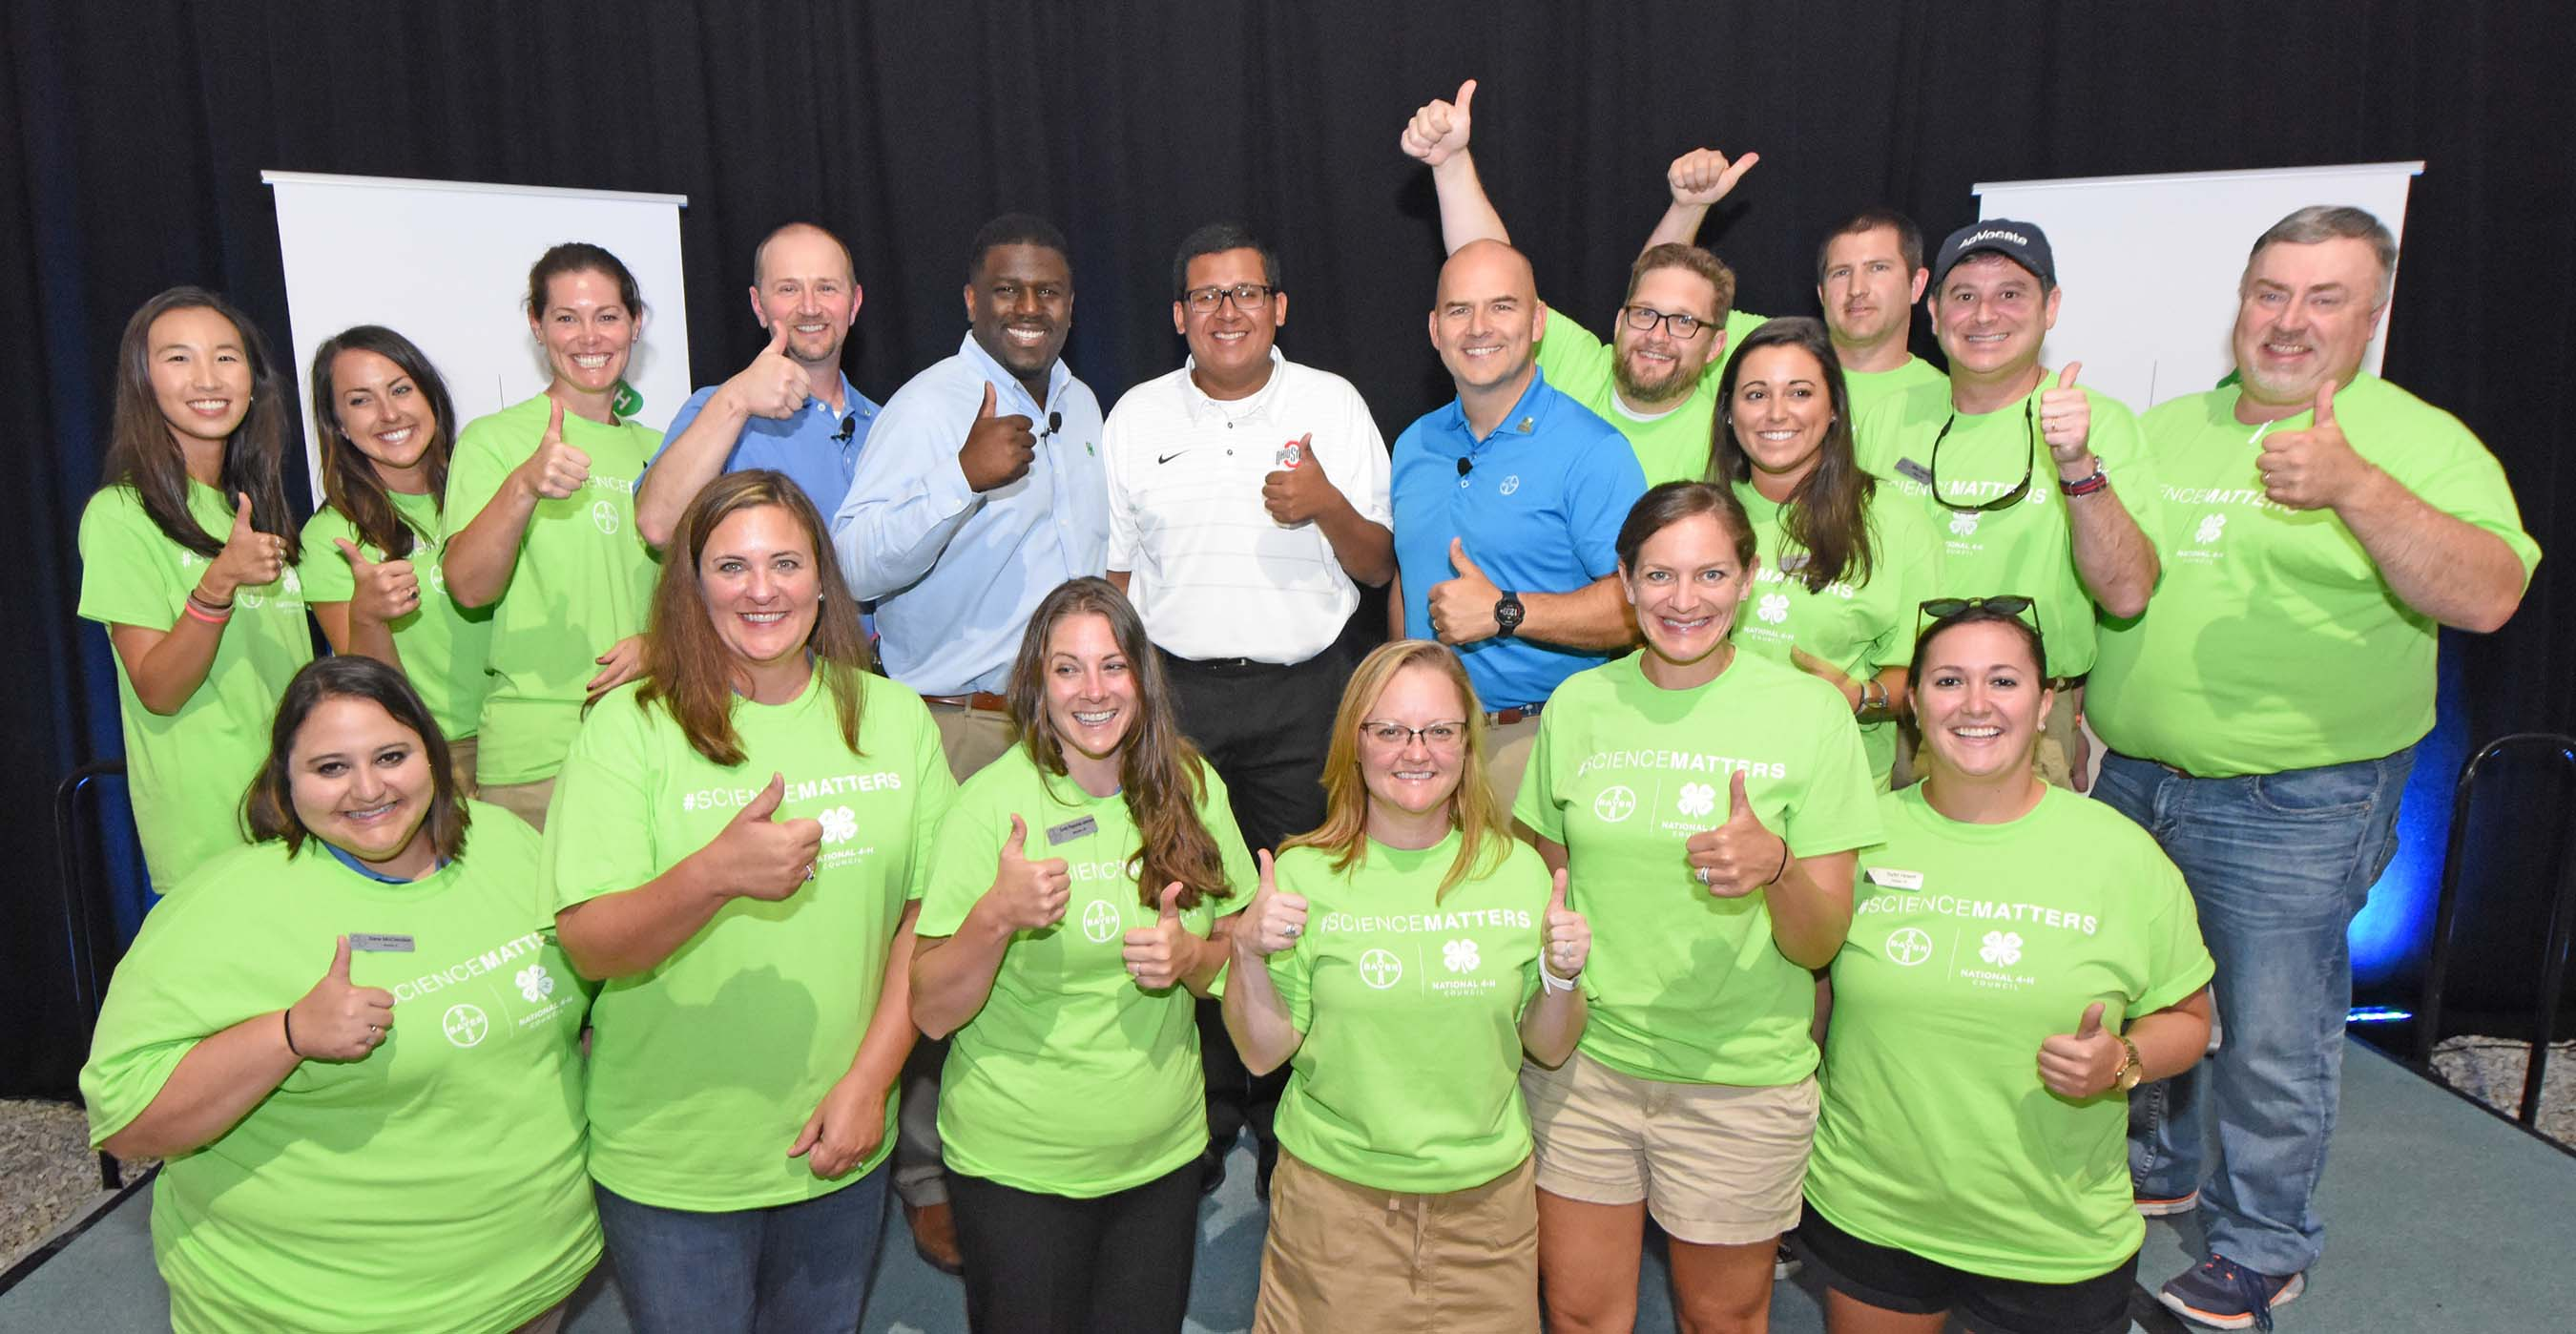 Bayer and 4-H announce new collaboration to support STEM education at Farm Progress Show 2017.